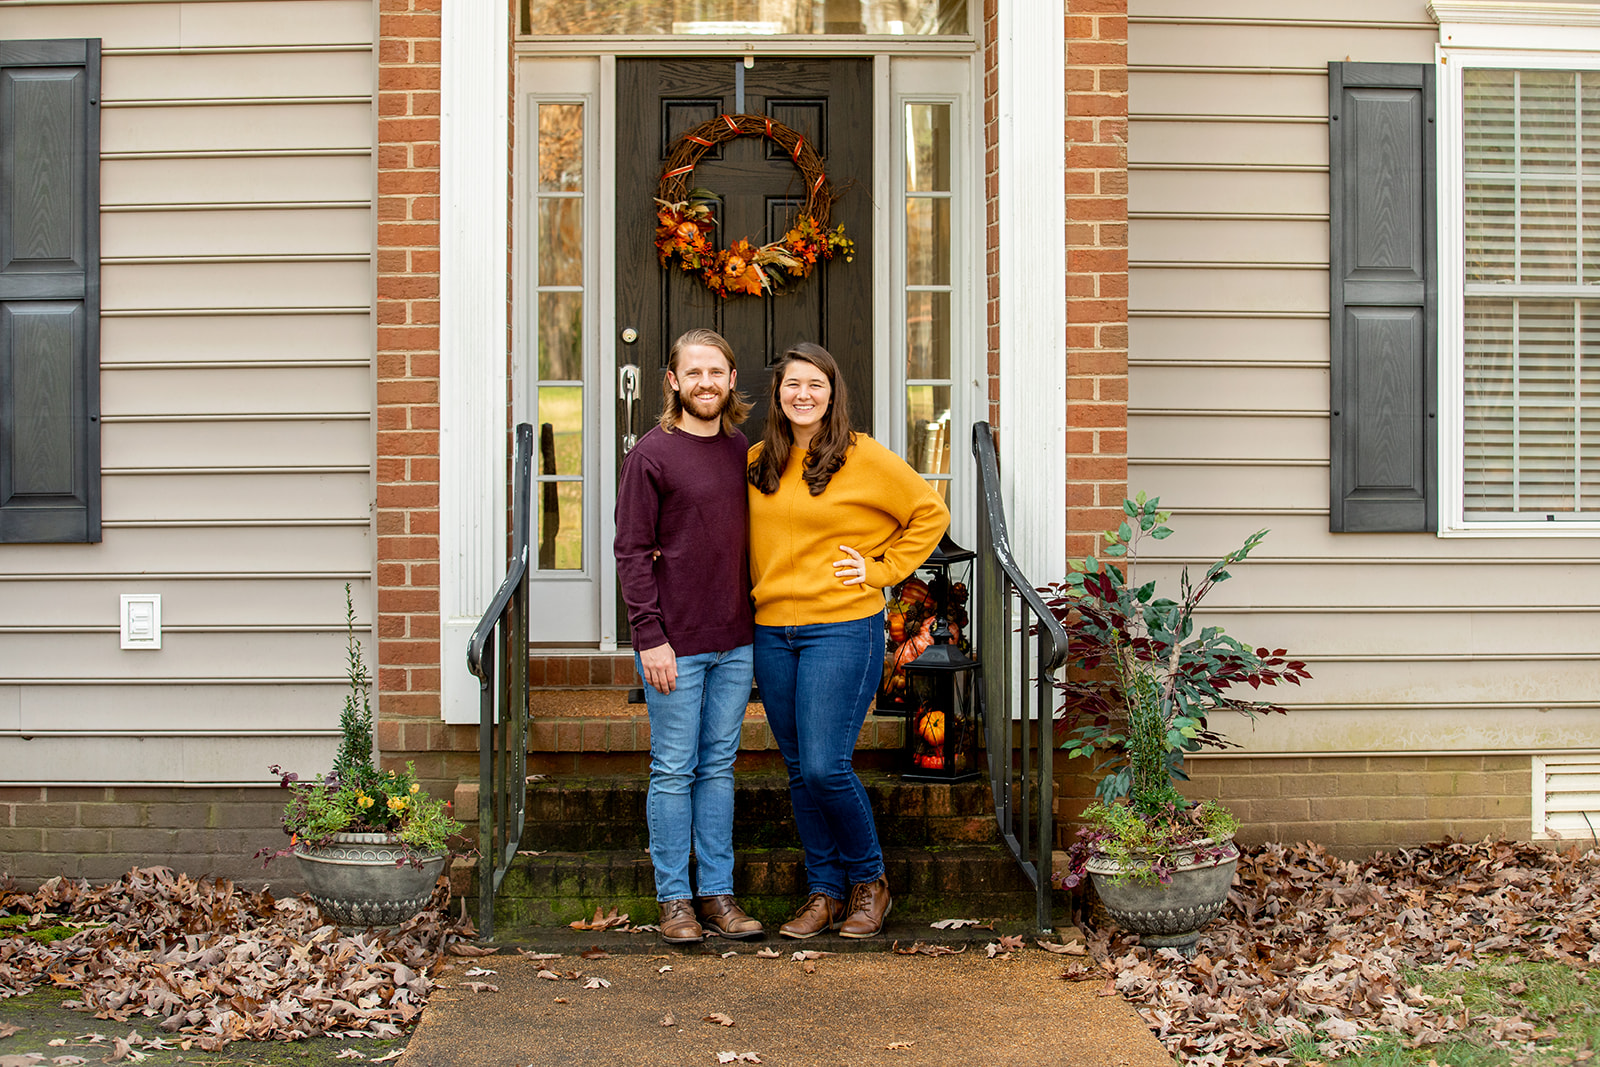 Thanksgiving Front Porch Mini Sessions - Image Property of www.j-dphoto.com